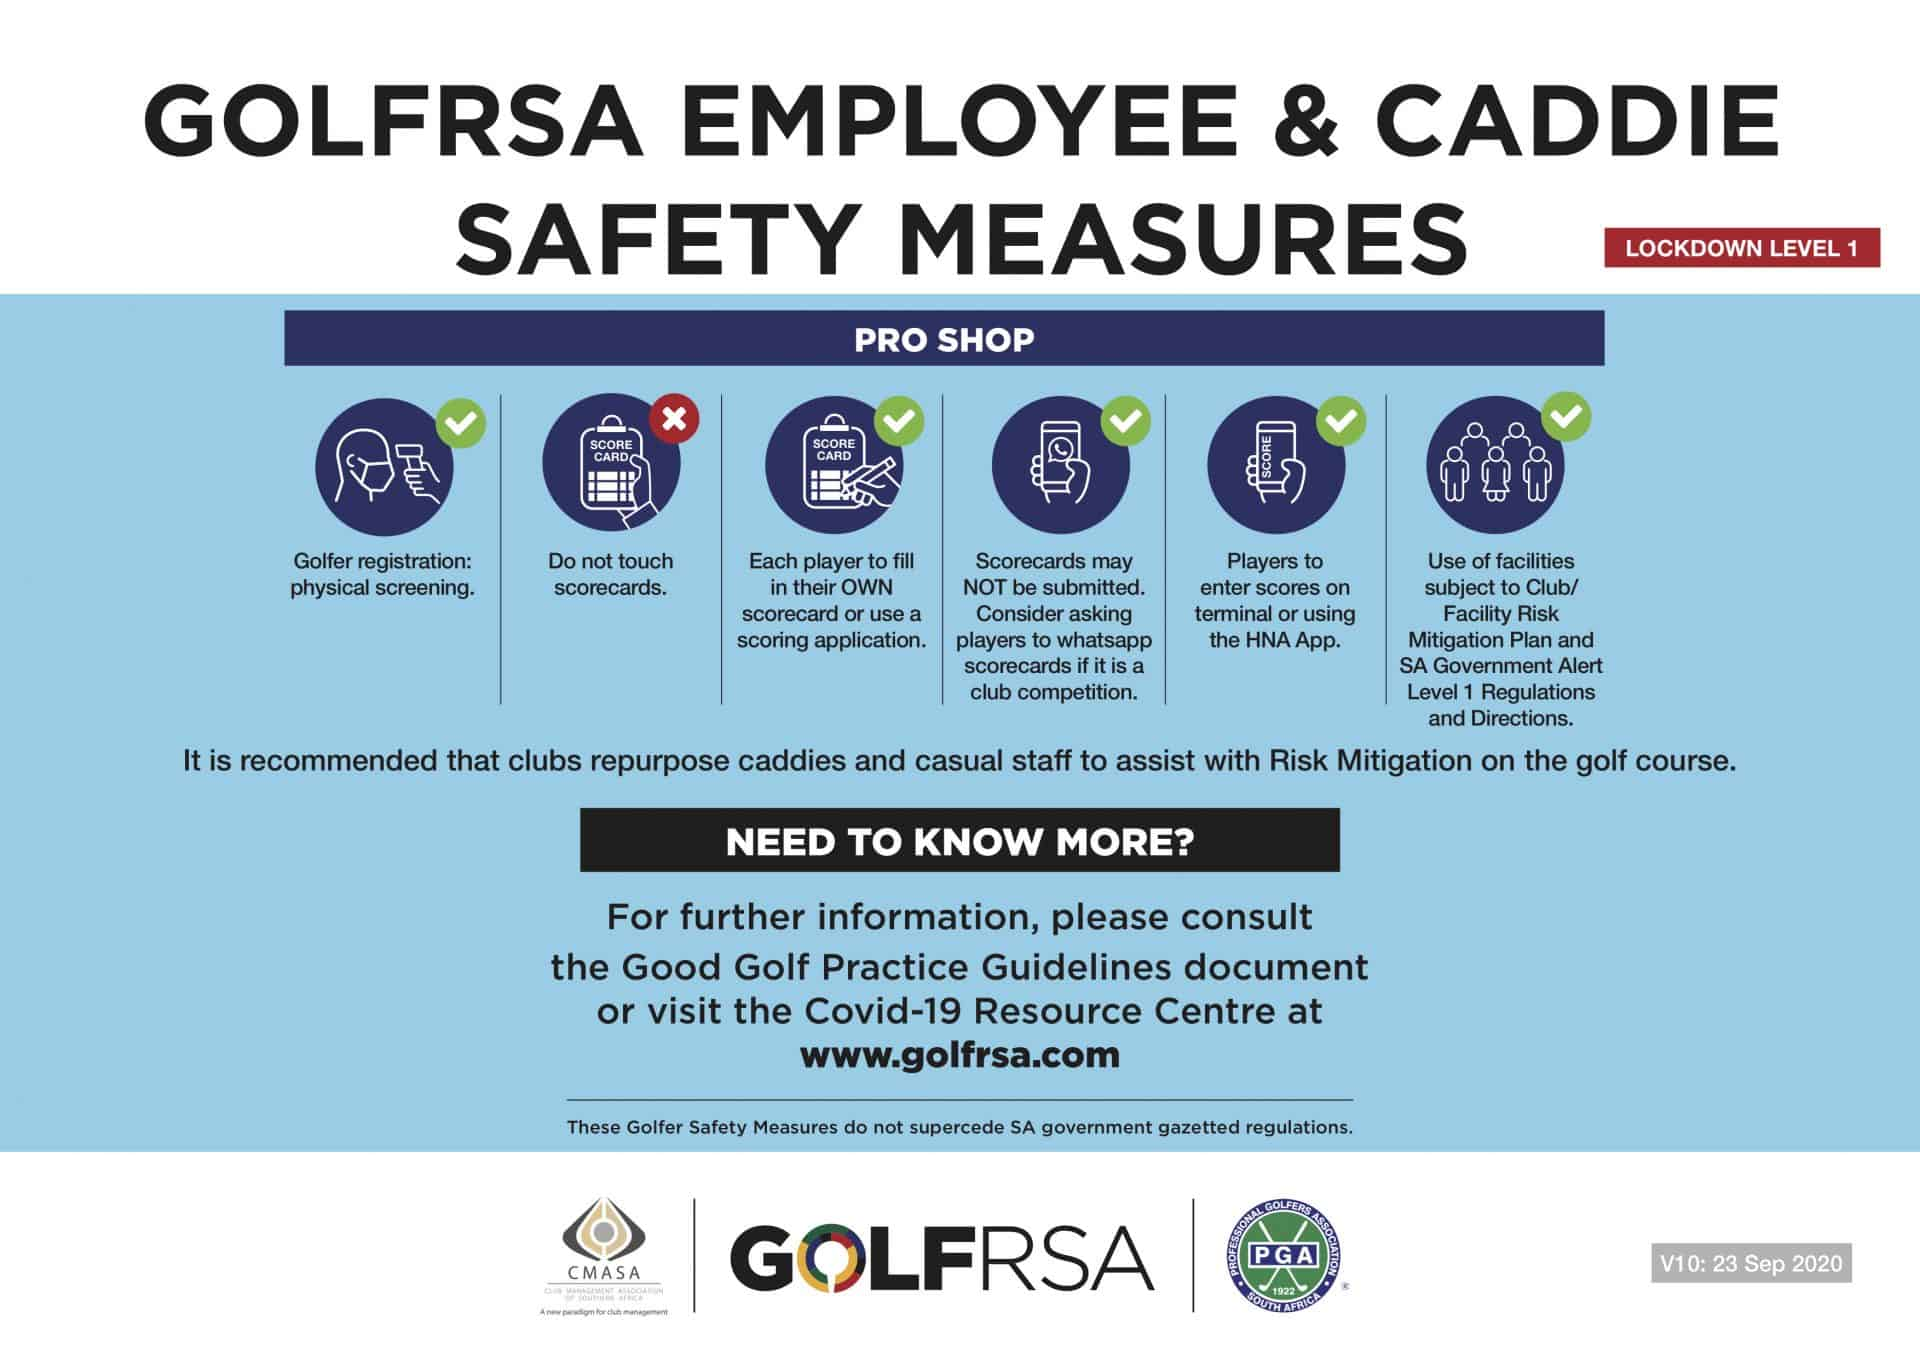 ENG GolfRSA caddie and employee safety measures V10 - 2